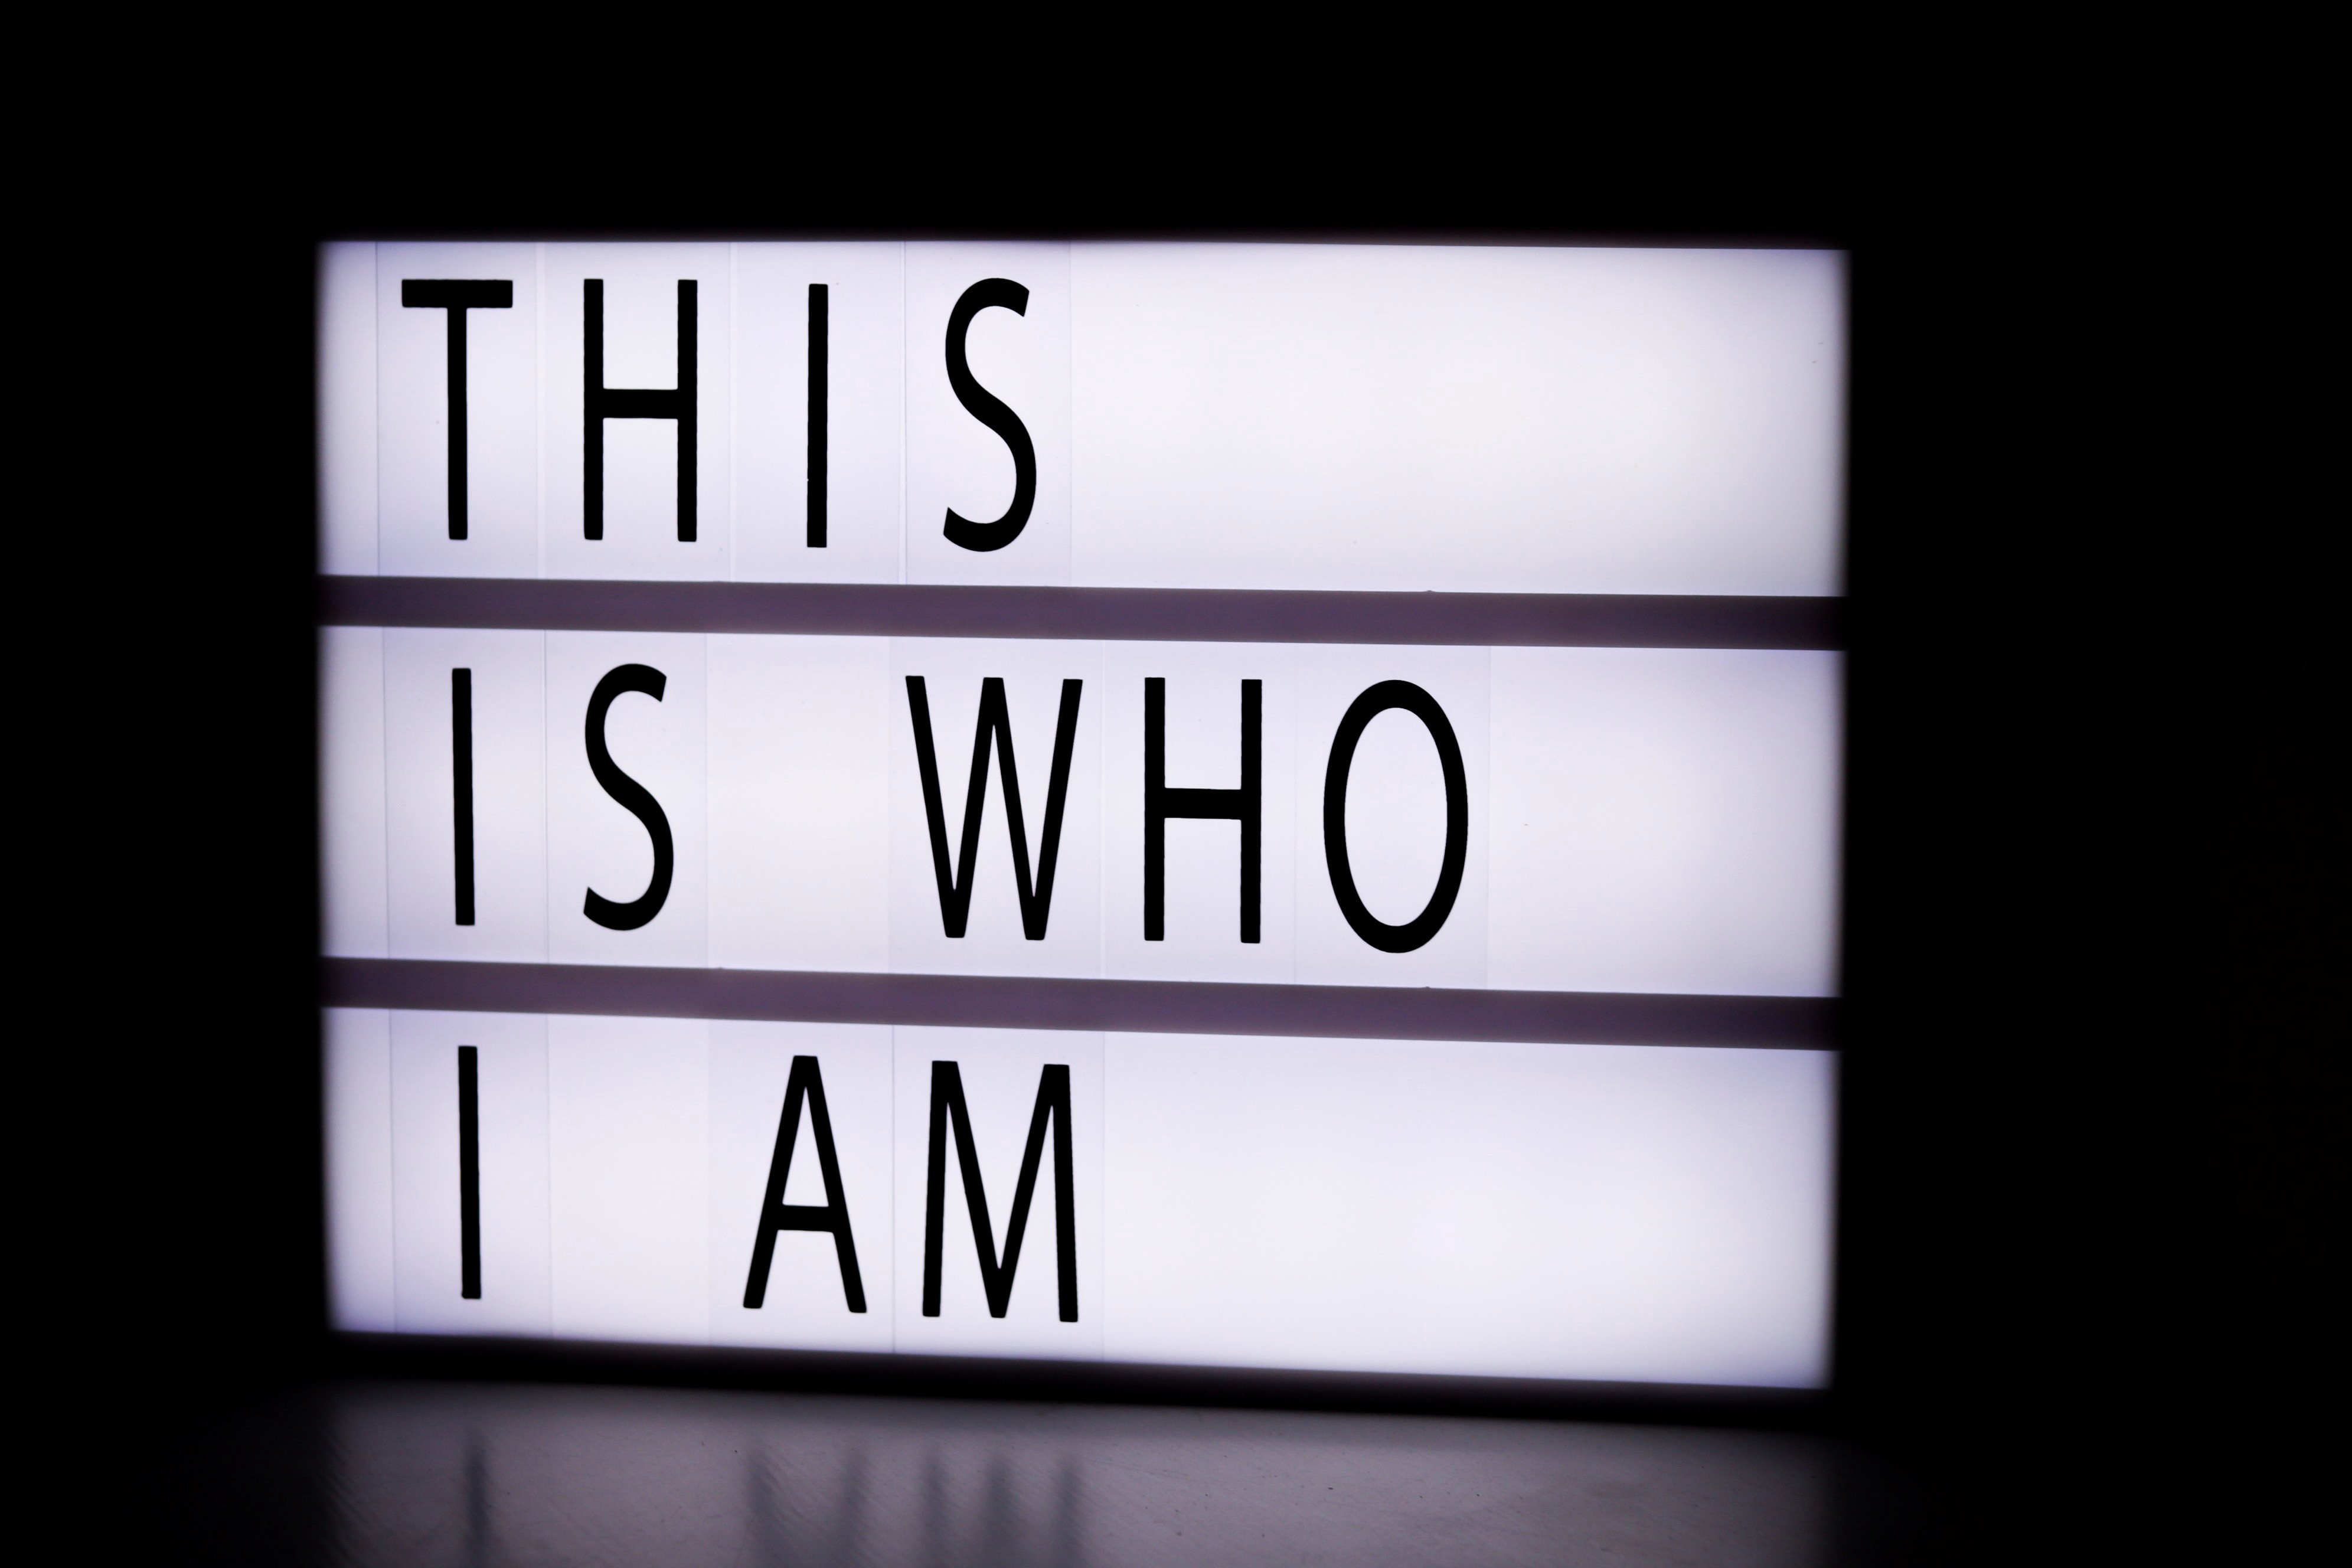 This is who I am—written on a light up box